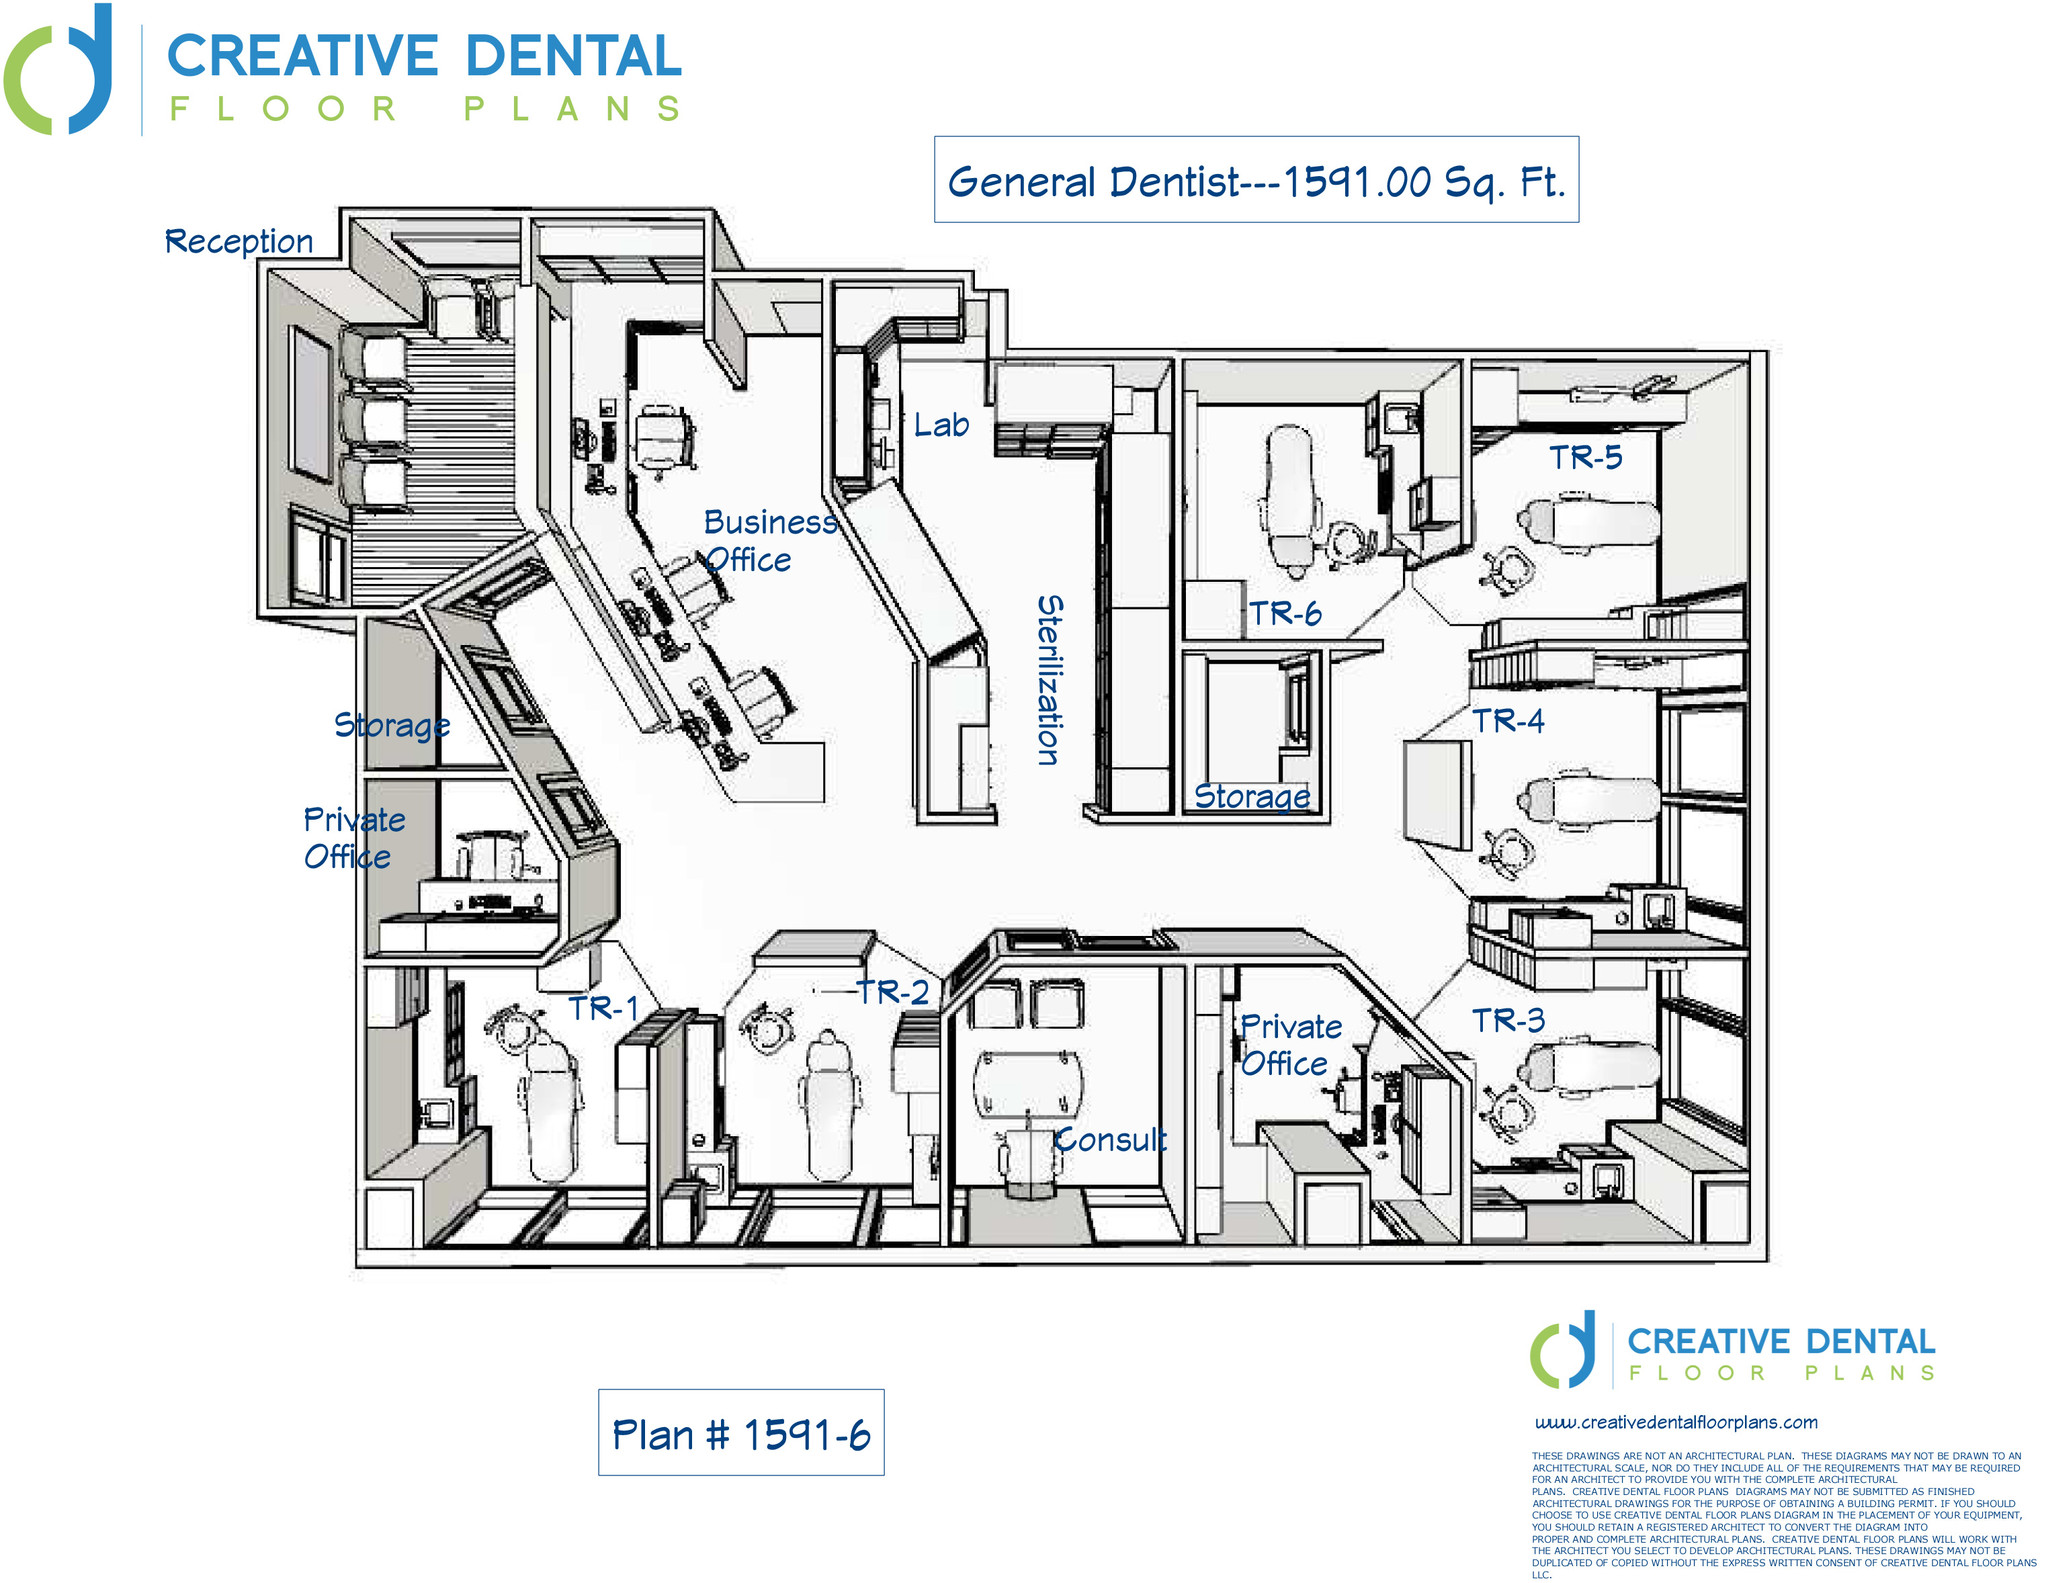 Dental Office Design   General Dentist Floor Plans